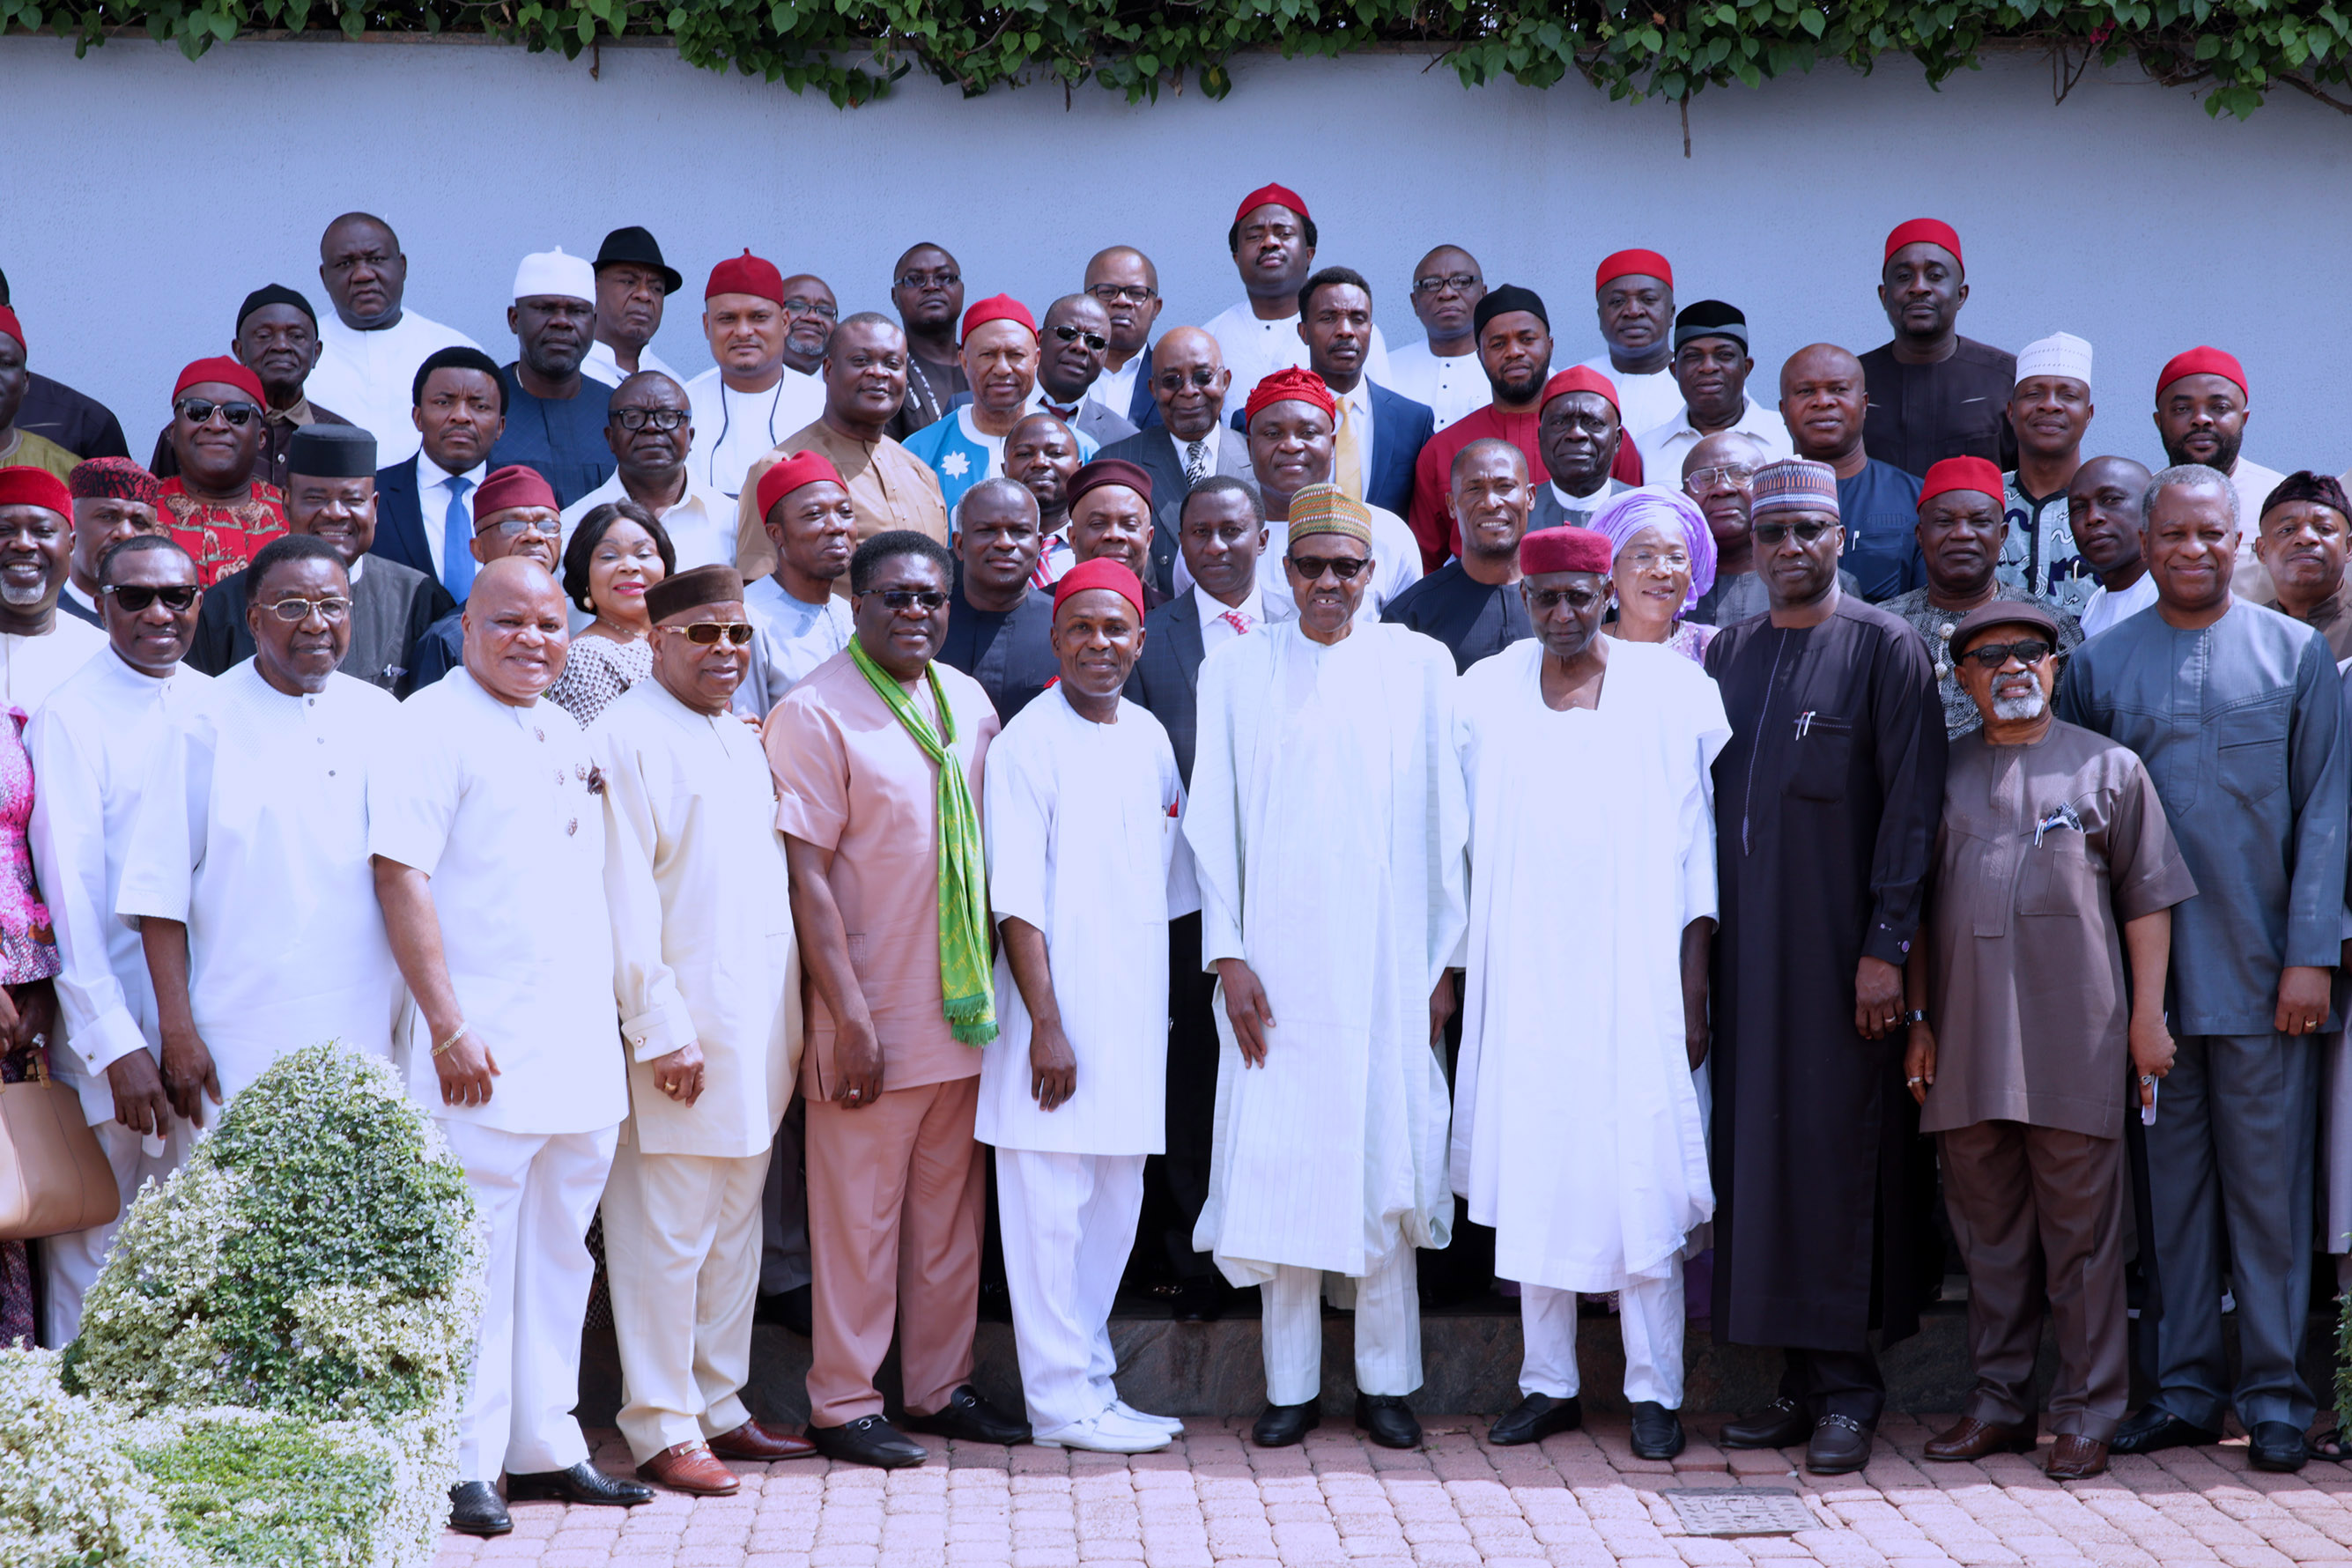 SOUTH EAST LEADERS 4; PHOTO OPPS: President Muhammadu flanked by Minister of Science and Technology, Dr Ogbonnaya Onu, Deputy Governor Imo State, Prince Eze Madumere, Senator Ifeanyi Ararume, Former Governor Old Anambra State, Senator Jim Nwobodo, Sen Andy Uba, Chief of Staff, Mallam Abba Kyari, SGFN Mr Boss Mustapha and others after meeting delegation of APC Leaders from the South East at the State House in Abuja. PHOTO; SUNDAY AGHAEZE. JAN 22 2018.